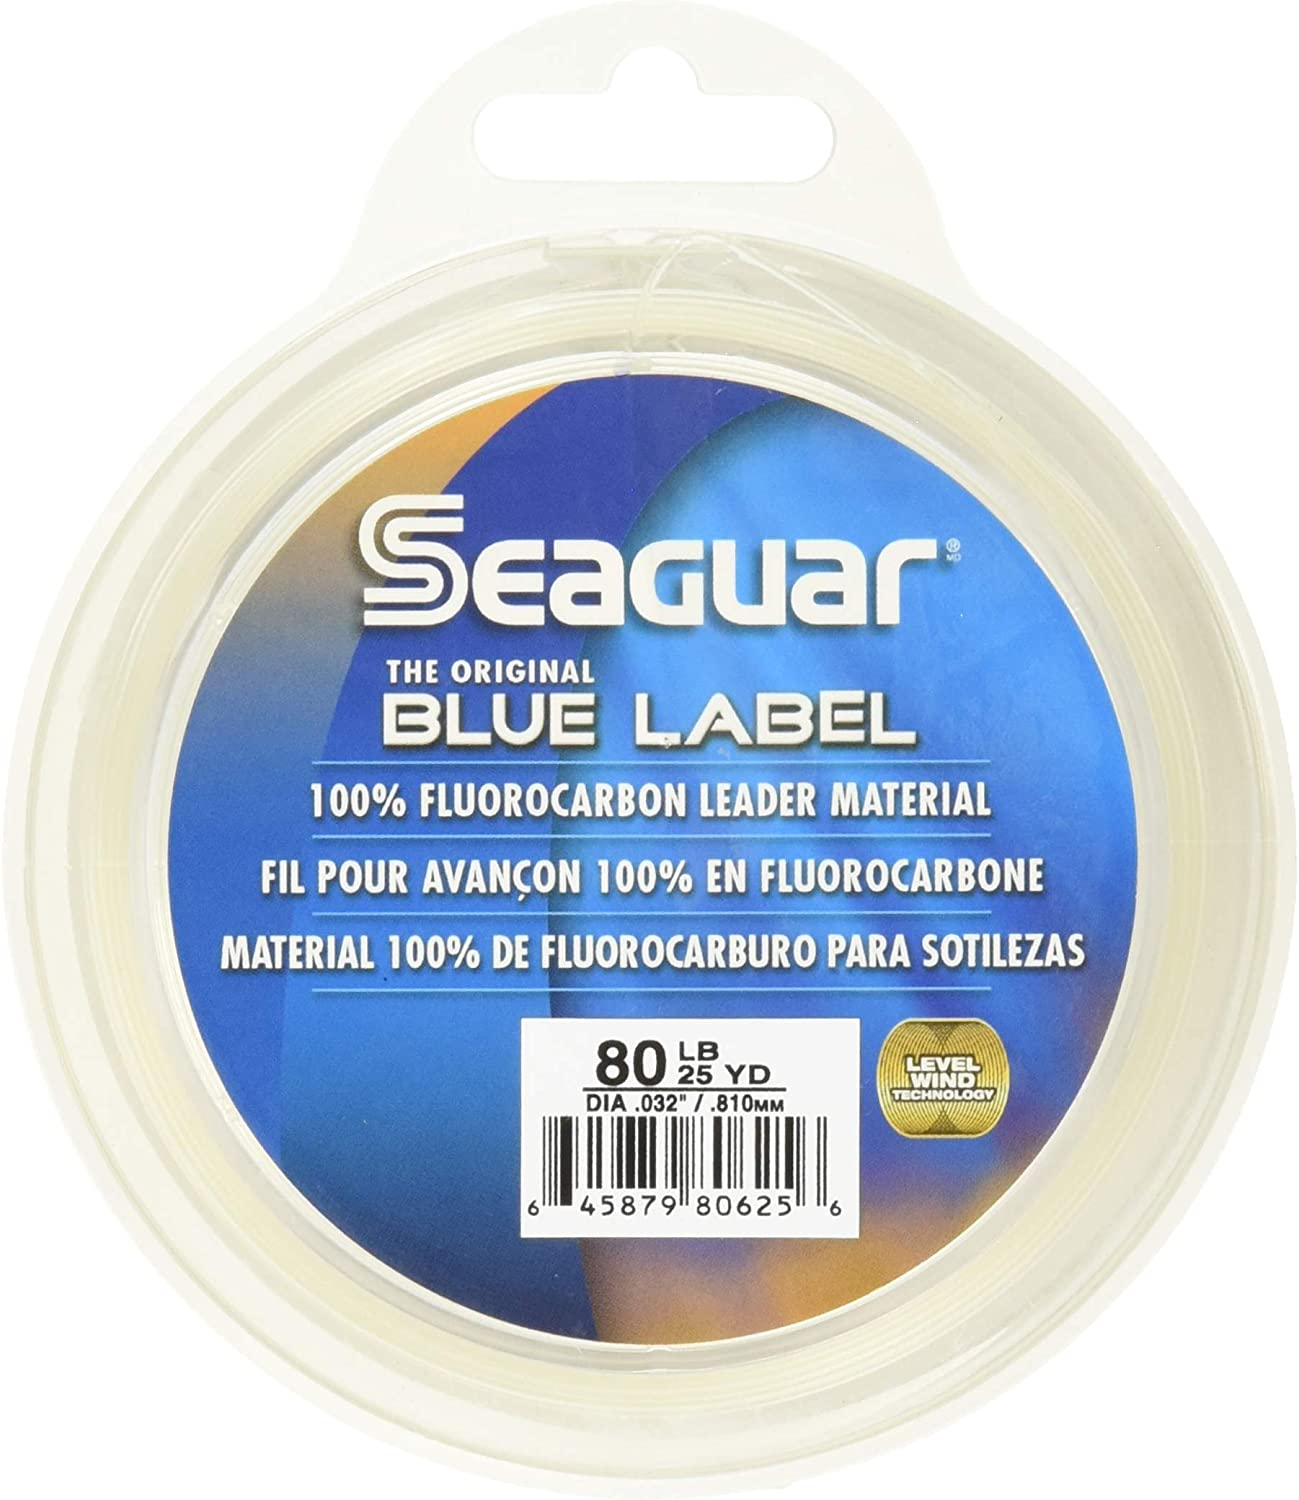 SEAGUAR PINK LABEL FLUOROCARBON Leader 25YD YARDS PICK YOUR SIZE FREE USA SHIP!